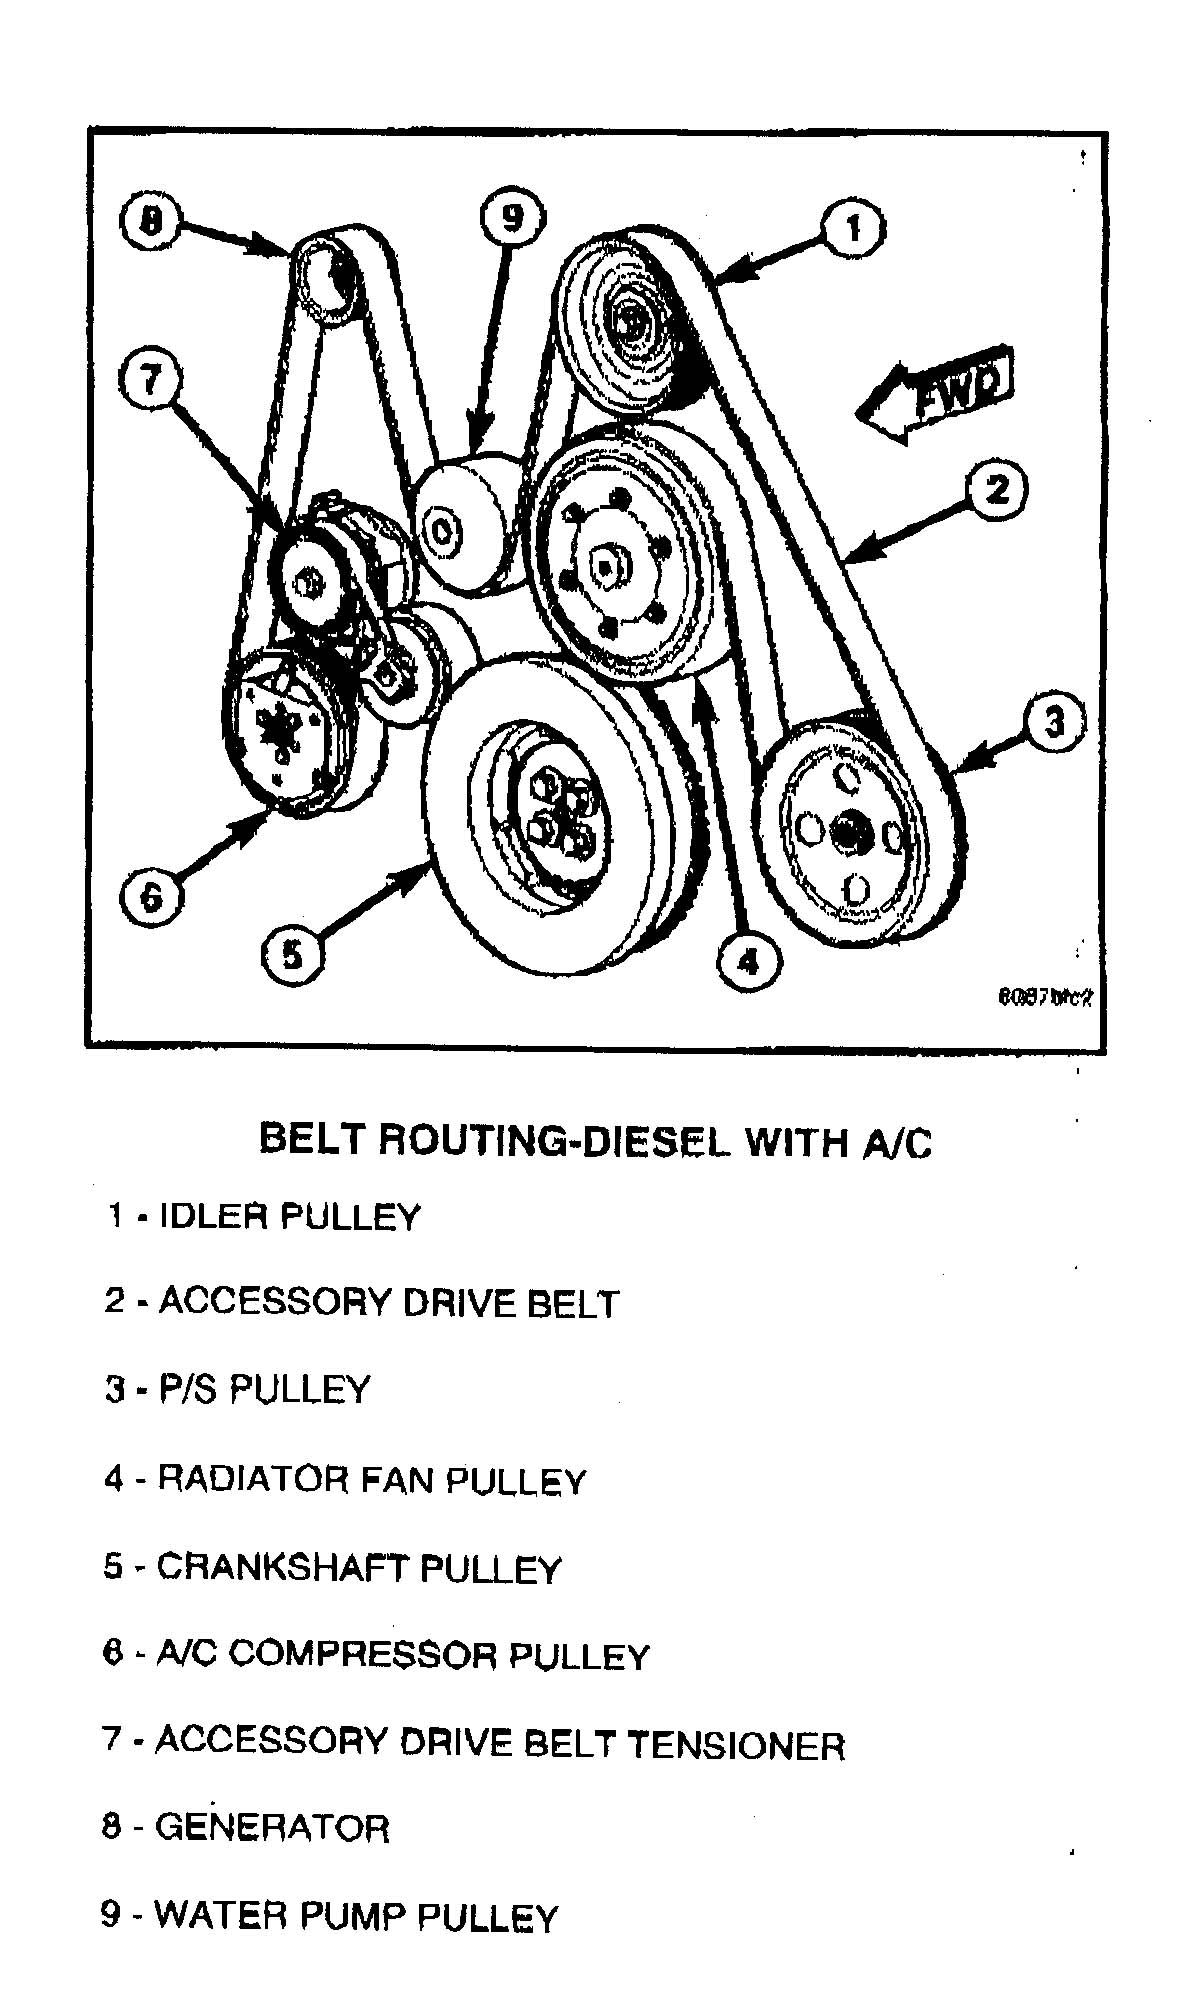 67 Belt Routing Diagram Dodge Diesel Truck Resource. 67 Belt Routing Diagram Dodge Diesel Truck Resource S Ram Trucks. Chevrolet. Chevy 2002 2500 Serpentine Belt Diagram At Scoala.co